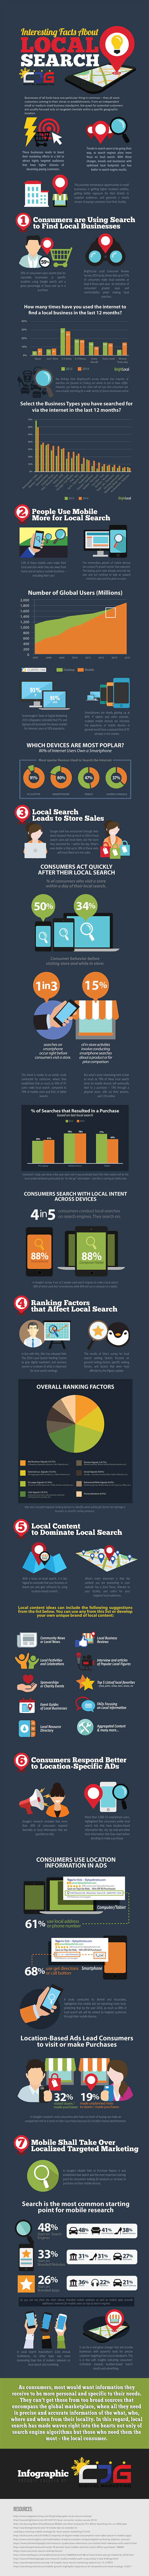 630 Interesting Facts about Local Search - Infographic - CJG Digital Marketing